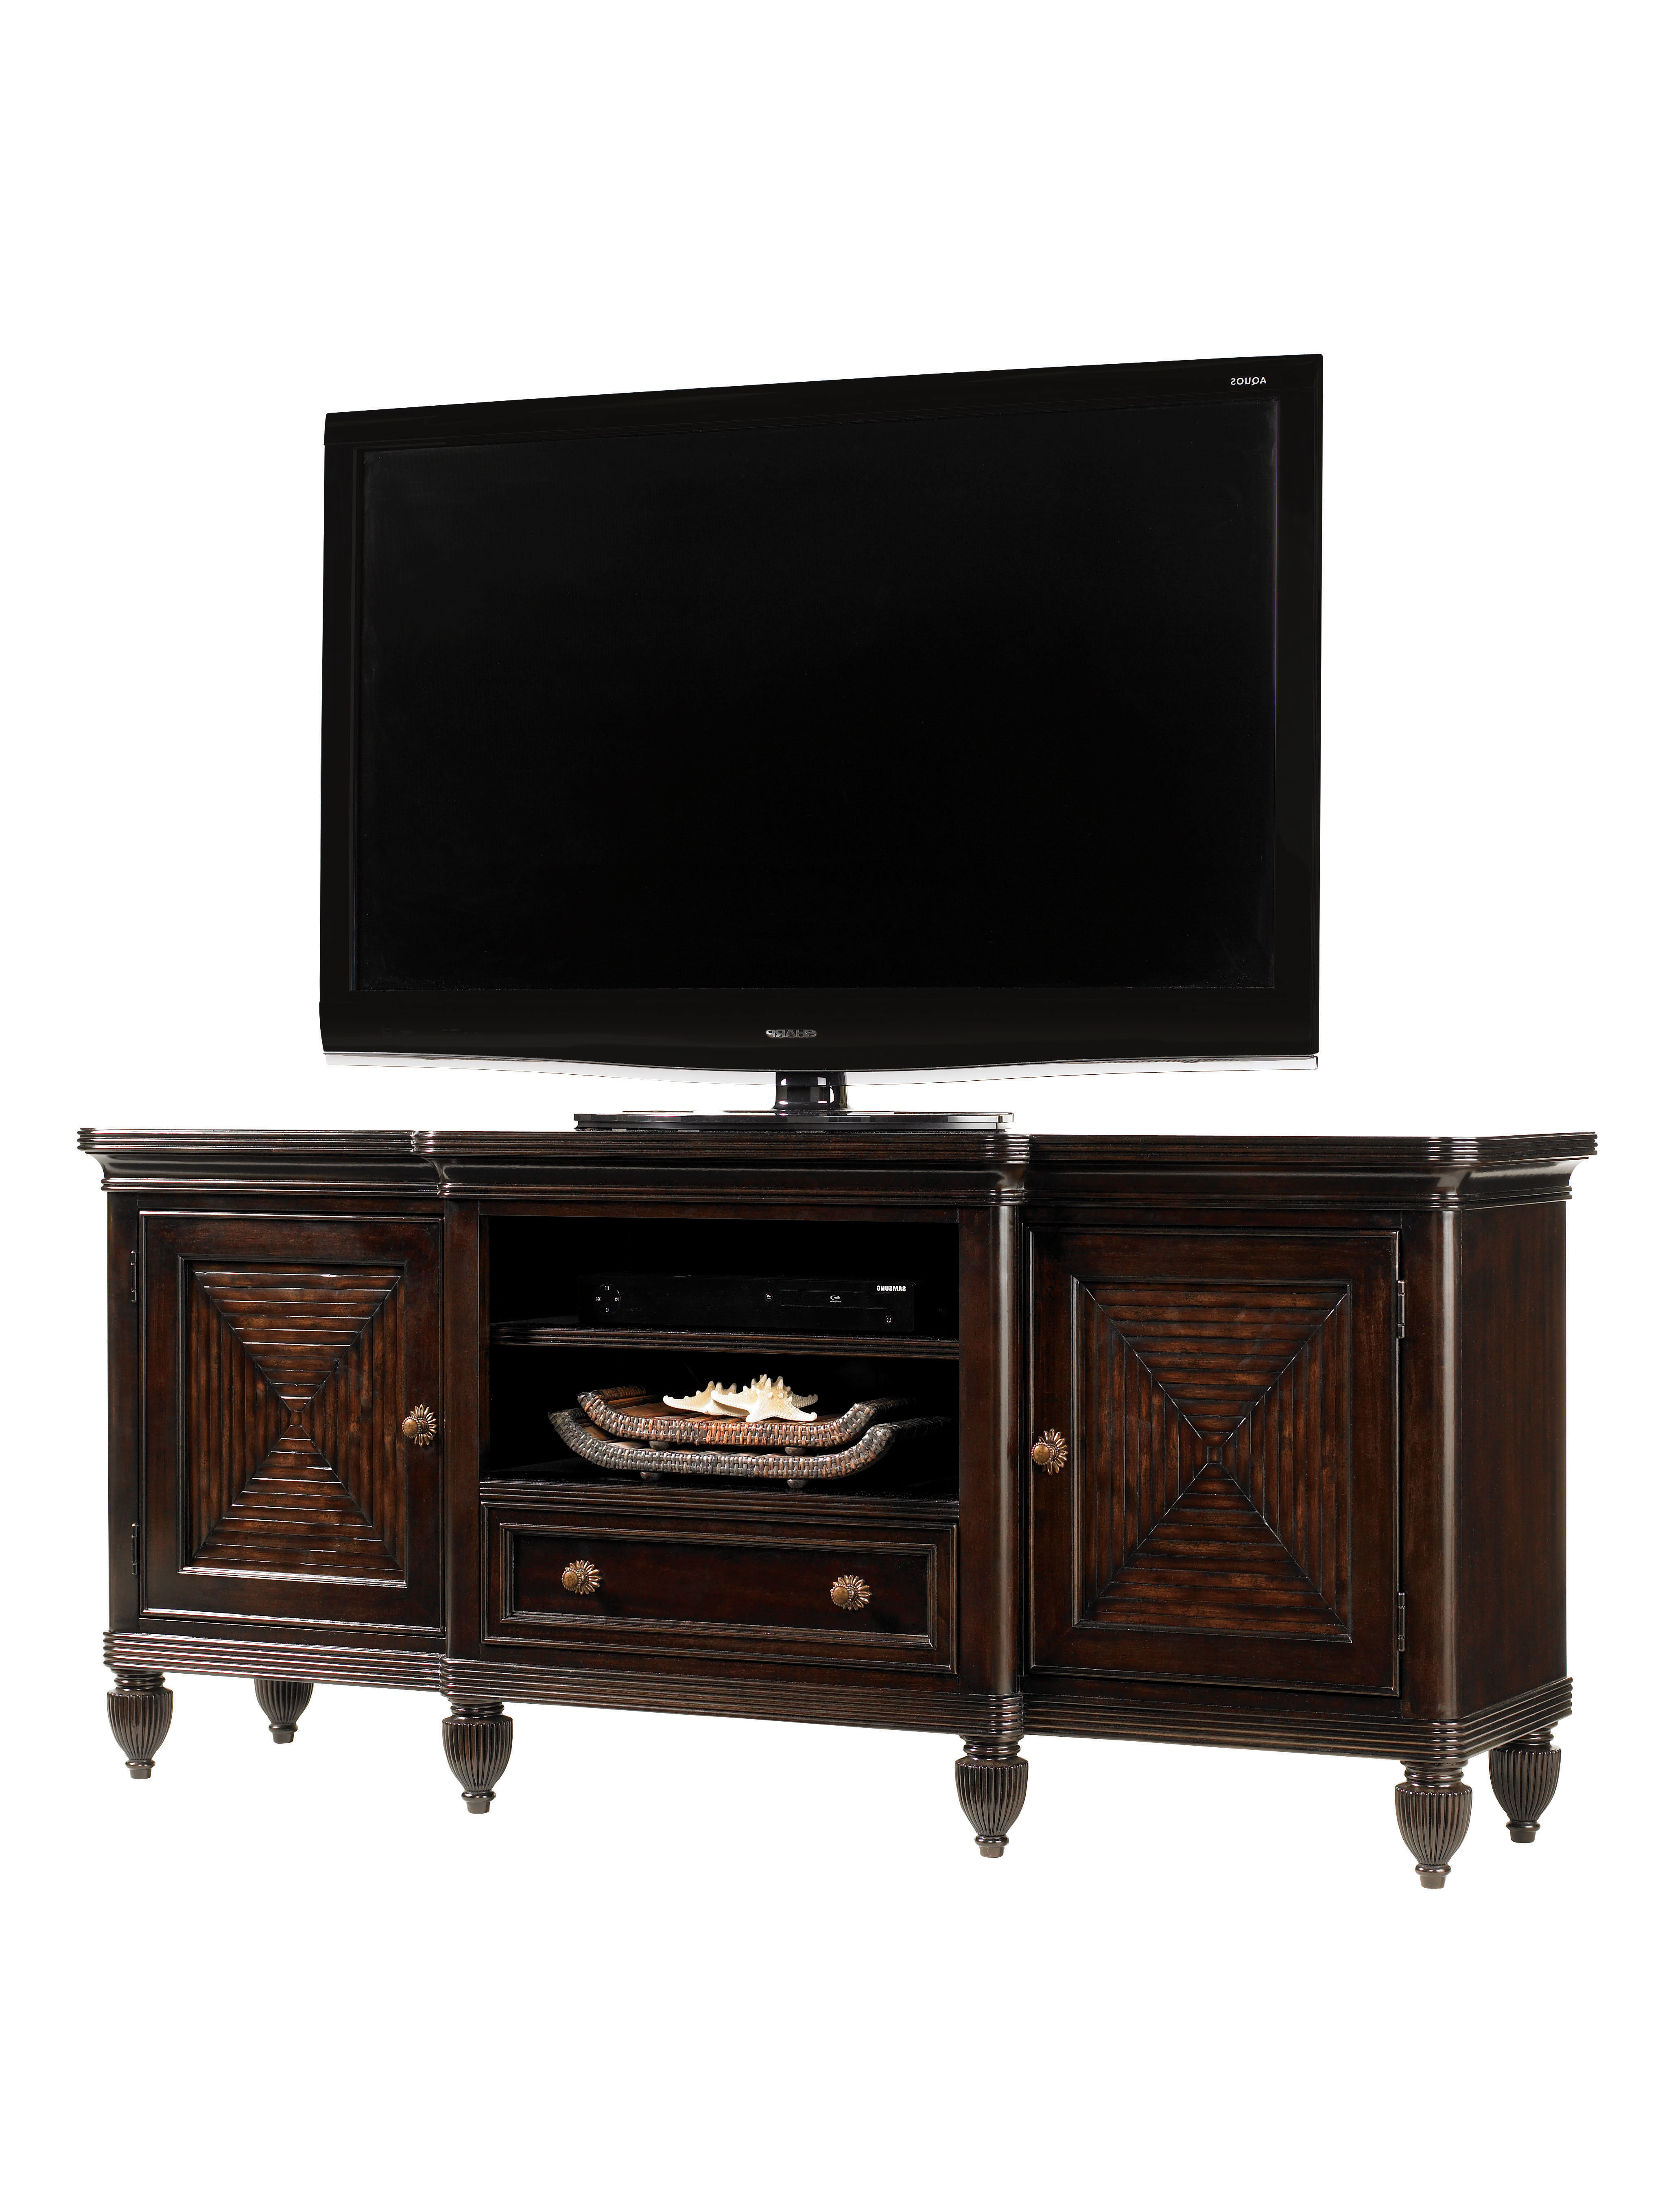 70 Inch Tv Stands | Joss & Main Throughout Bale 82 Inch Tv Stands (View 8 of 20)